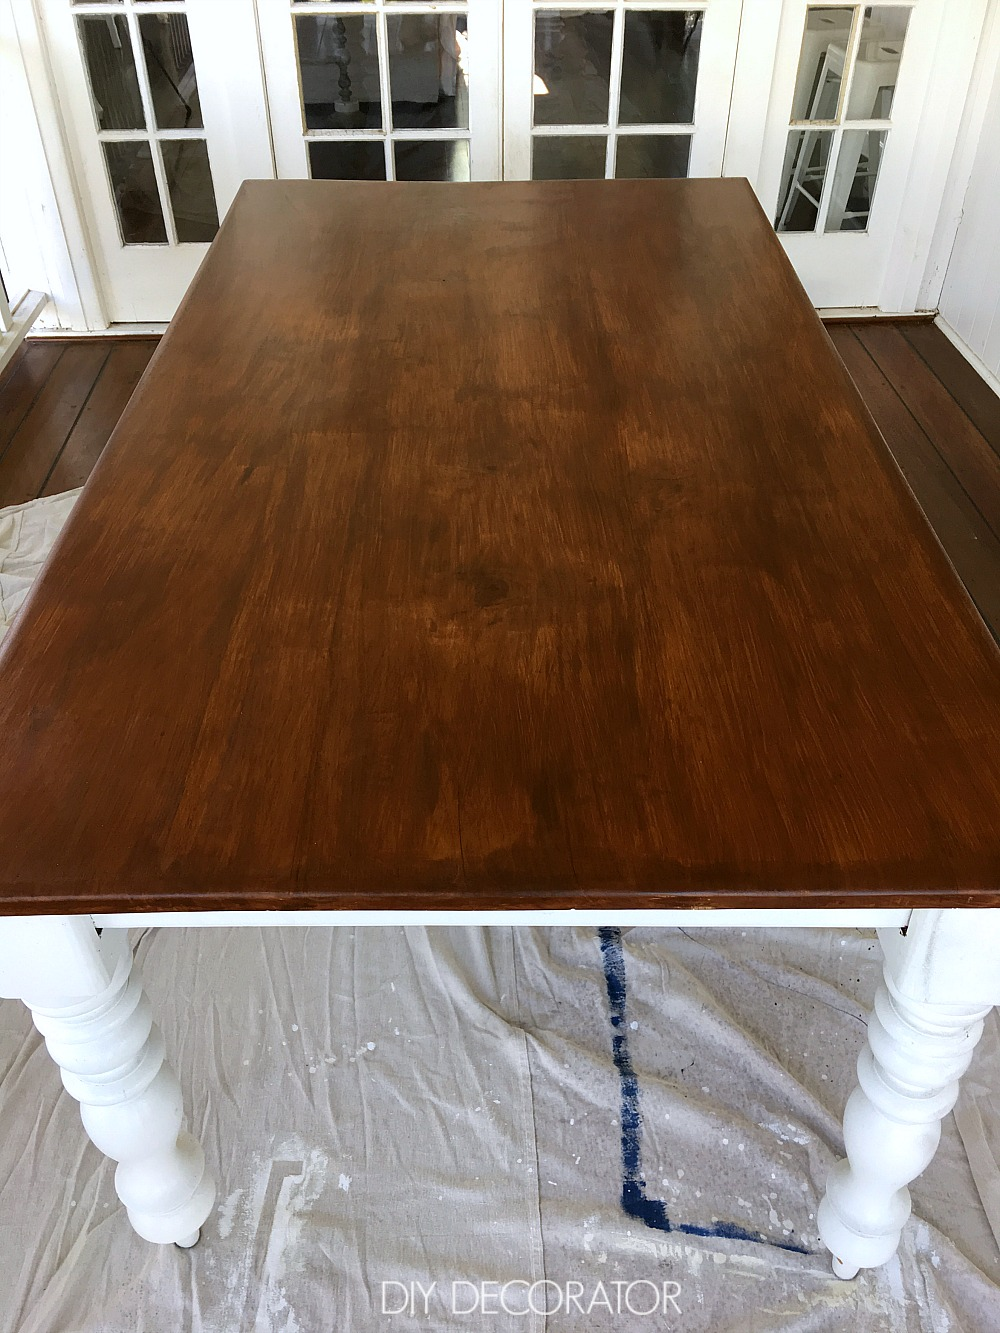 Refinish outdoor table 2 coats